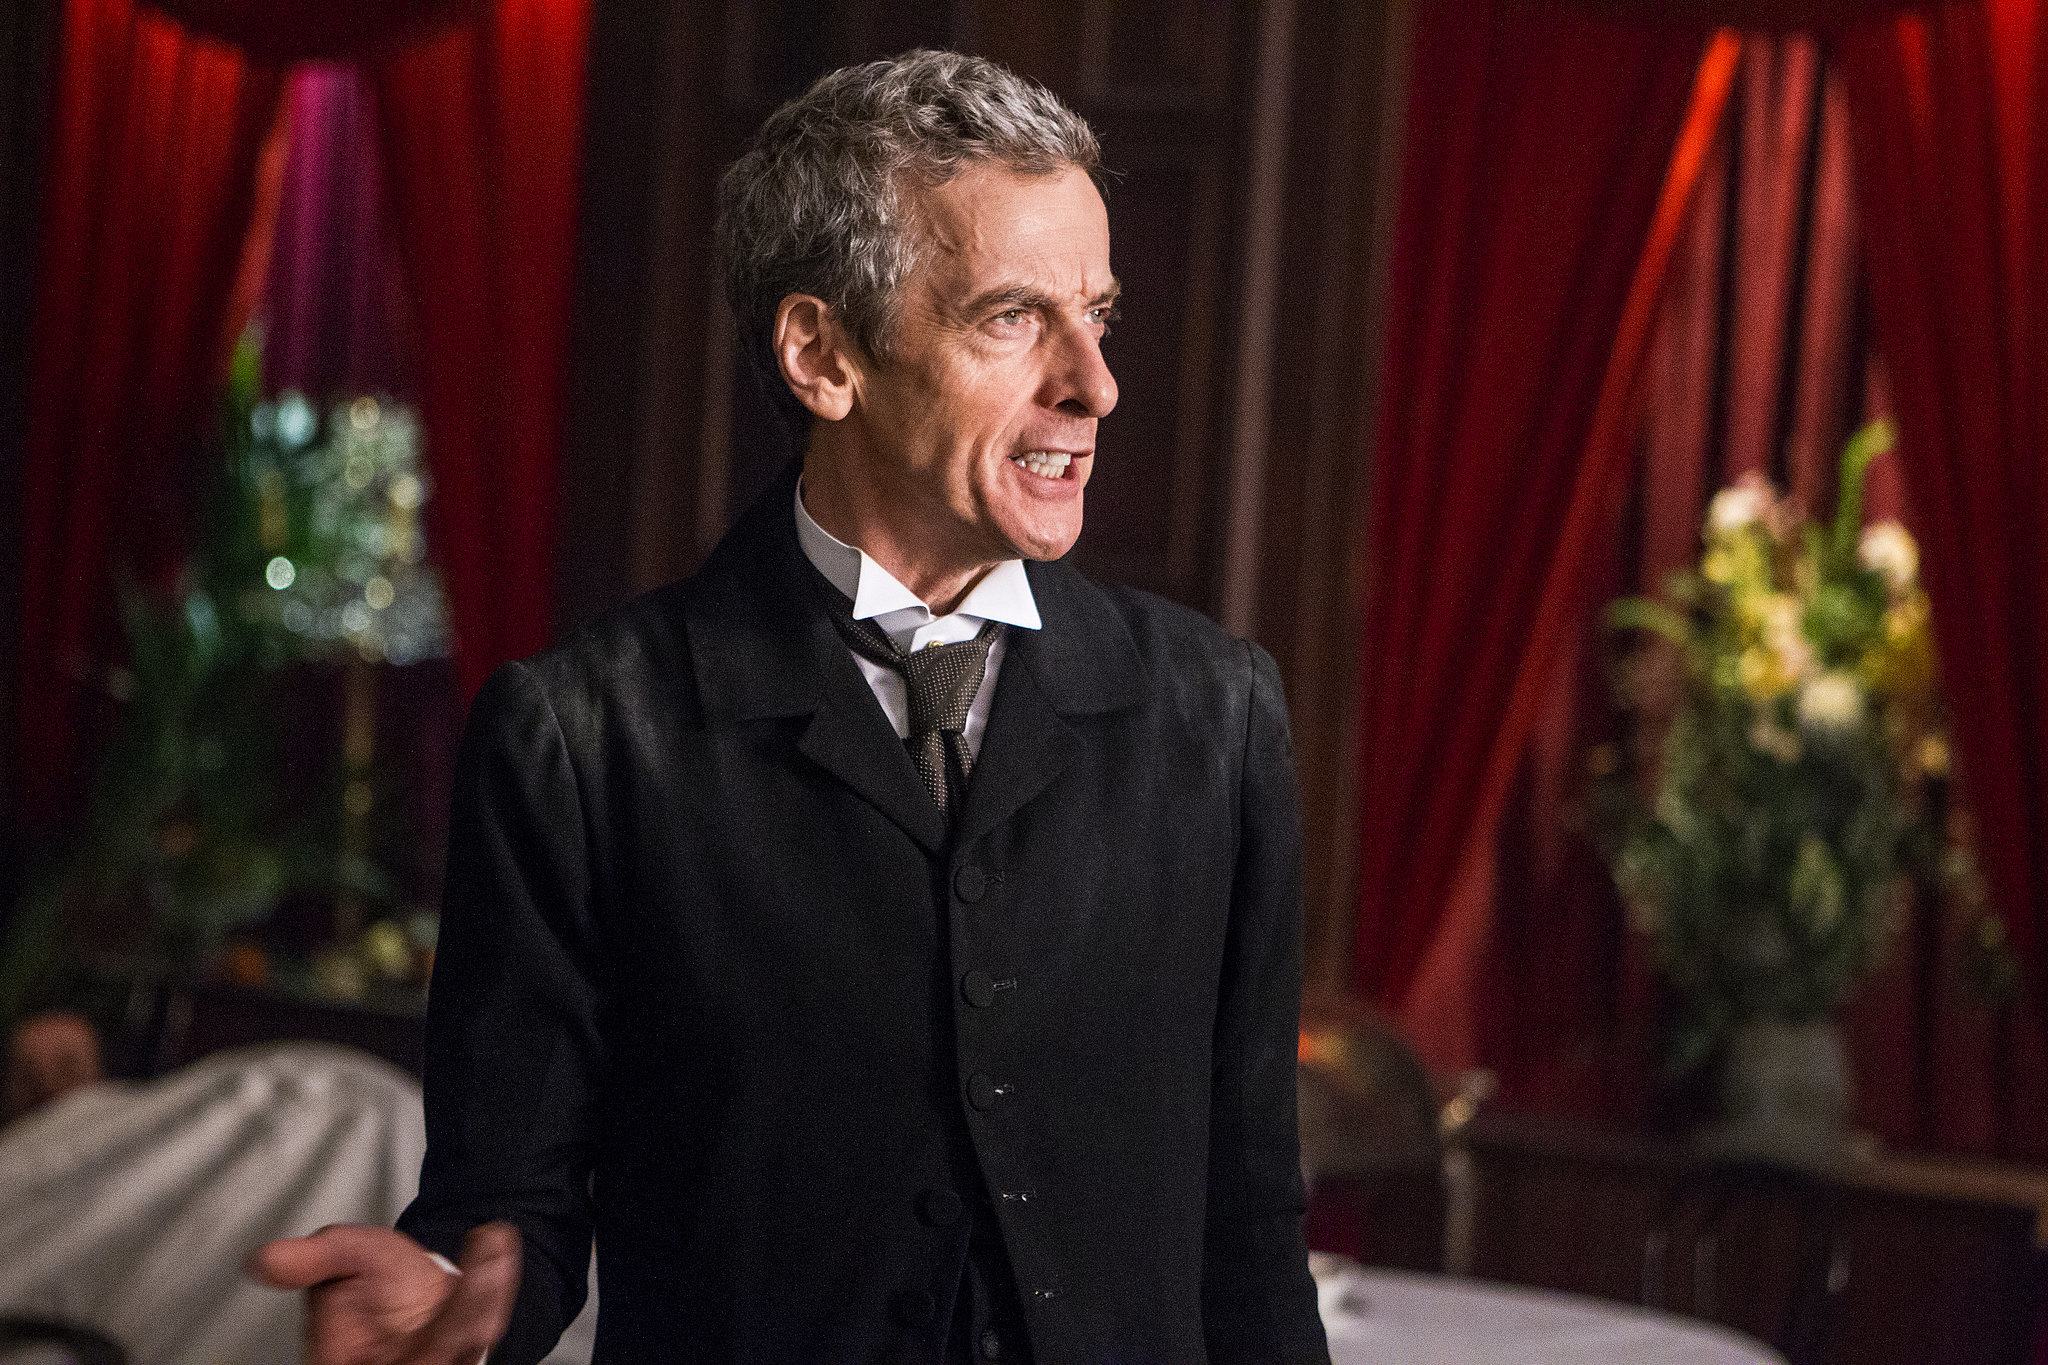 Doctor Who Is Prim and Proper in New Season 8 Pictures